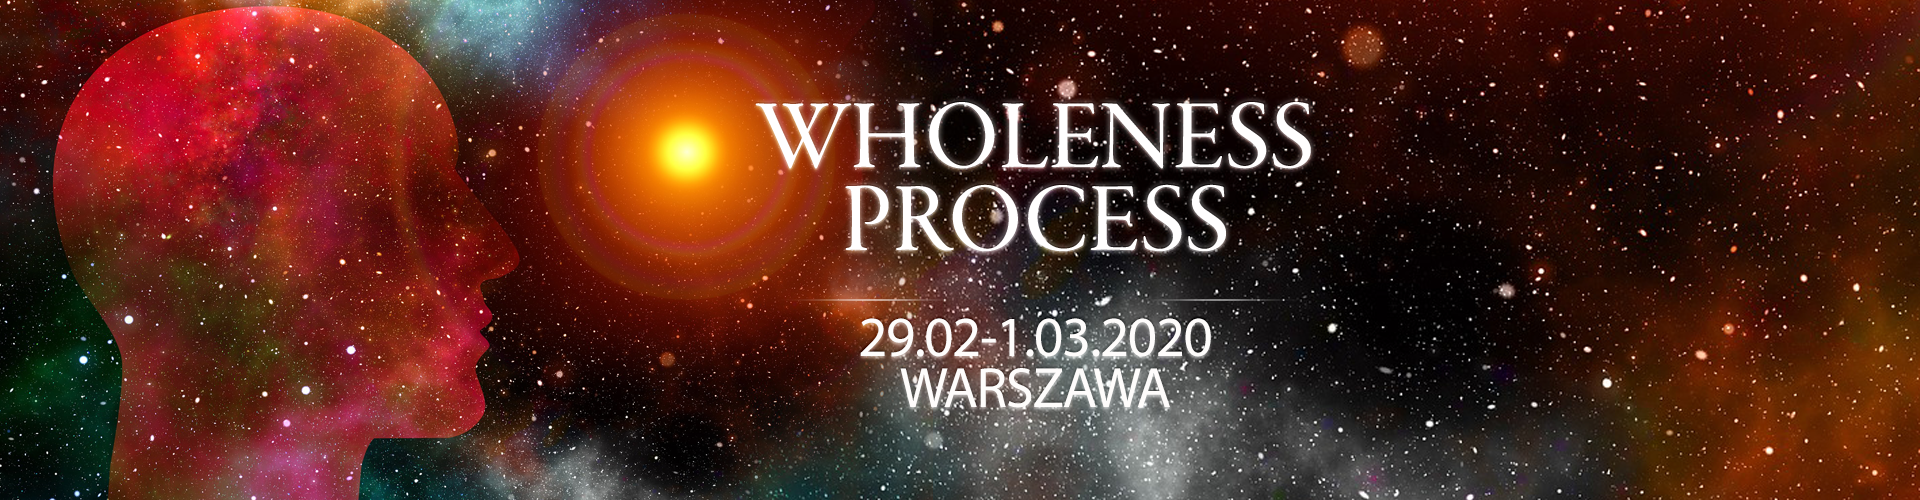 WHOLENESS-PROCESS-DUZY